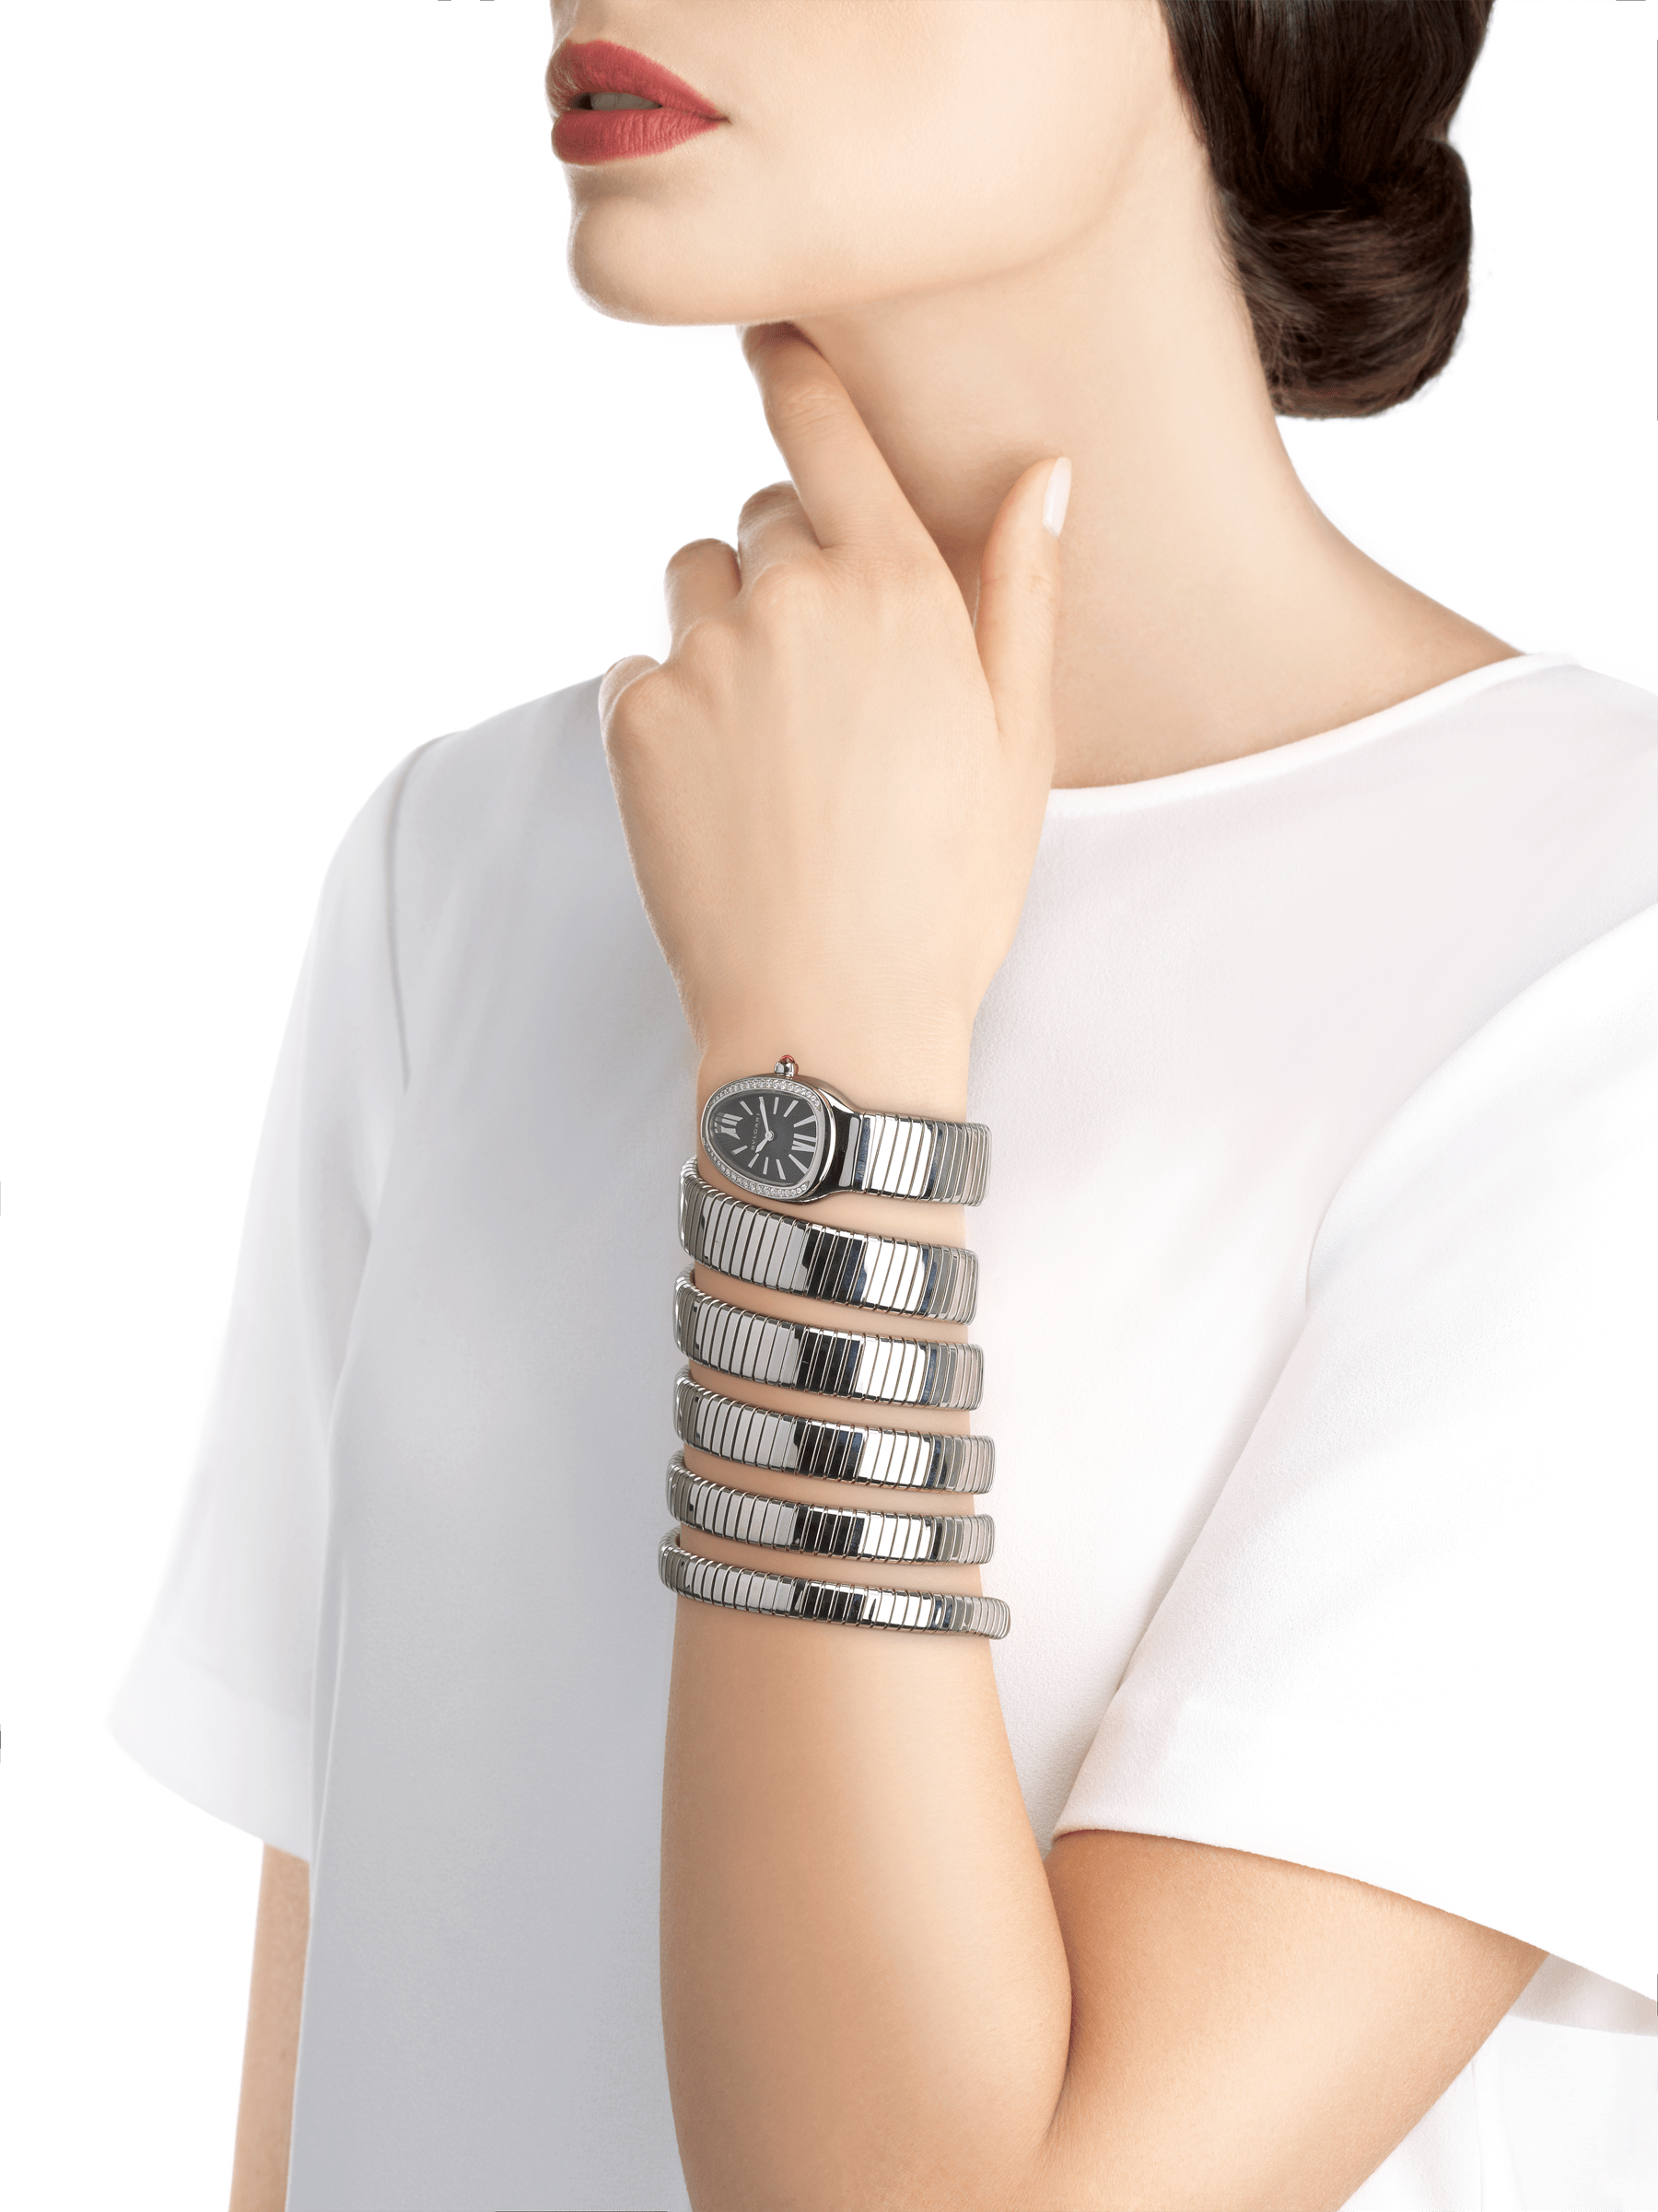 Serpenti Tubogas five-spiral watch with stainless steel case set with brilliant cut diamonds, black opaline dial and stainless steel bracelet. 102736 image 4